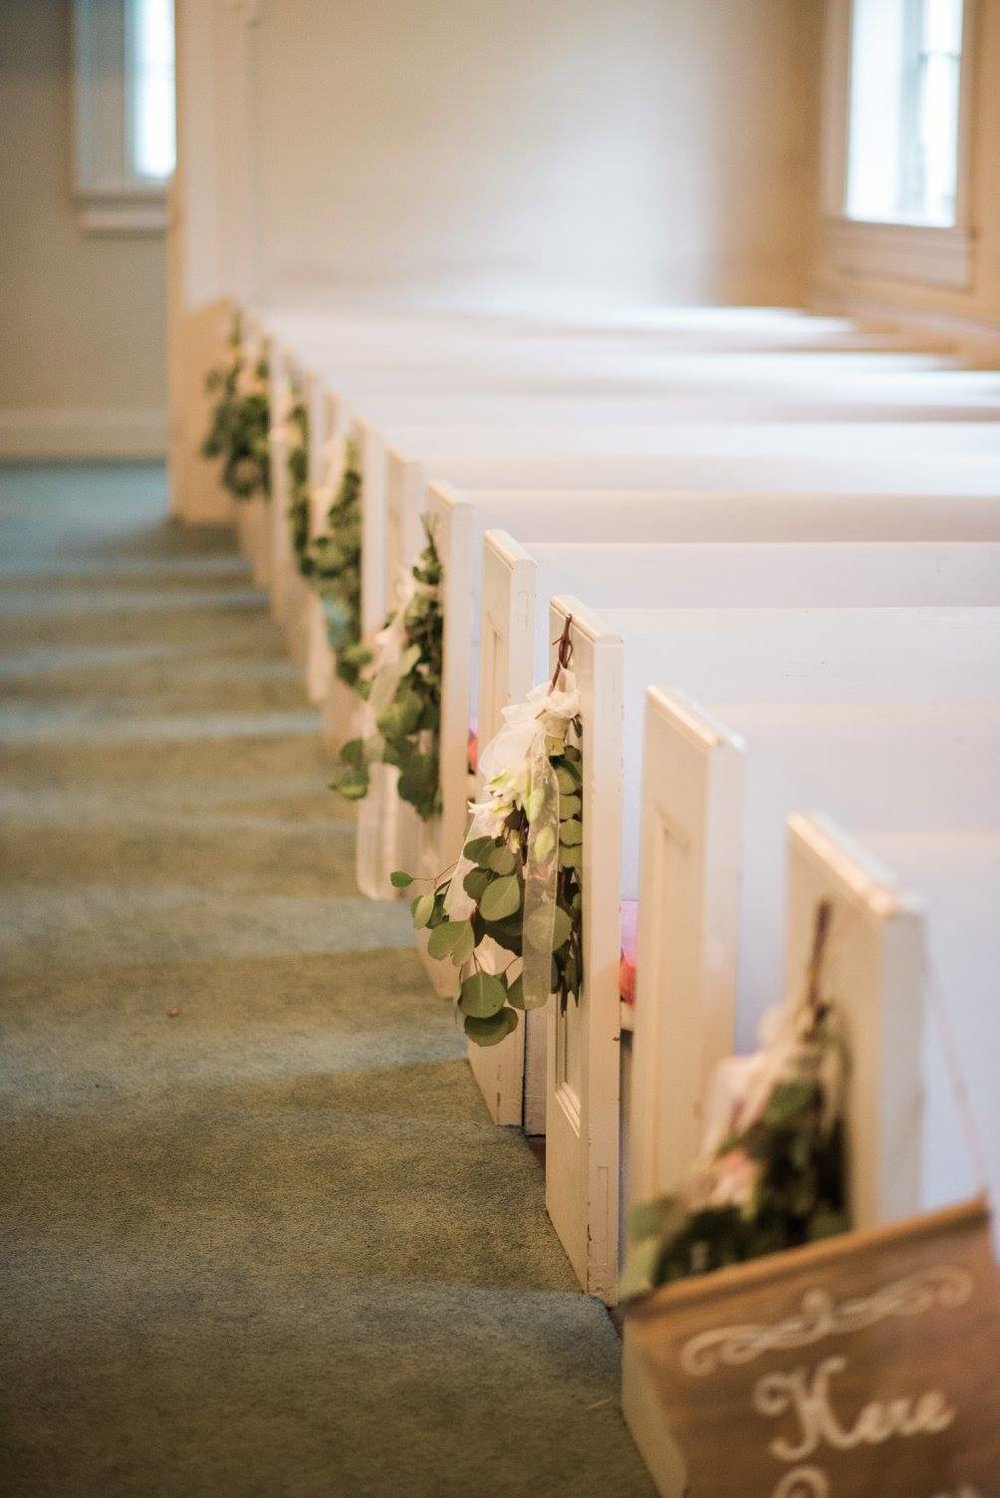 Classic Southern - Classic southern weddings incorporate shades of green, pink and cream roses in their decor. Common venues include white churches or historical plantations.